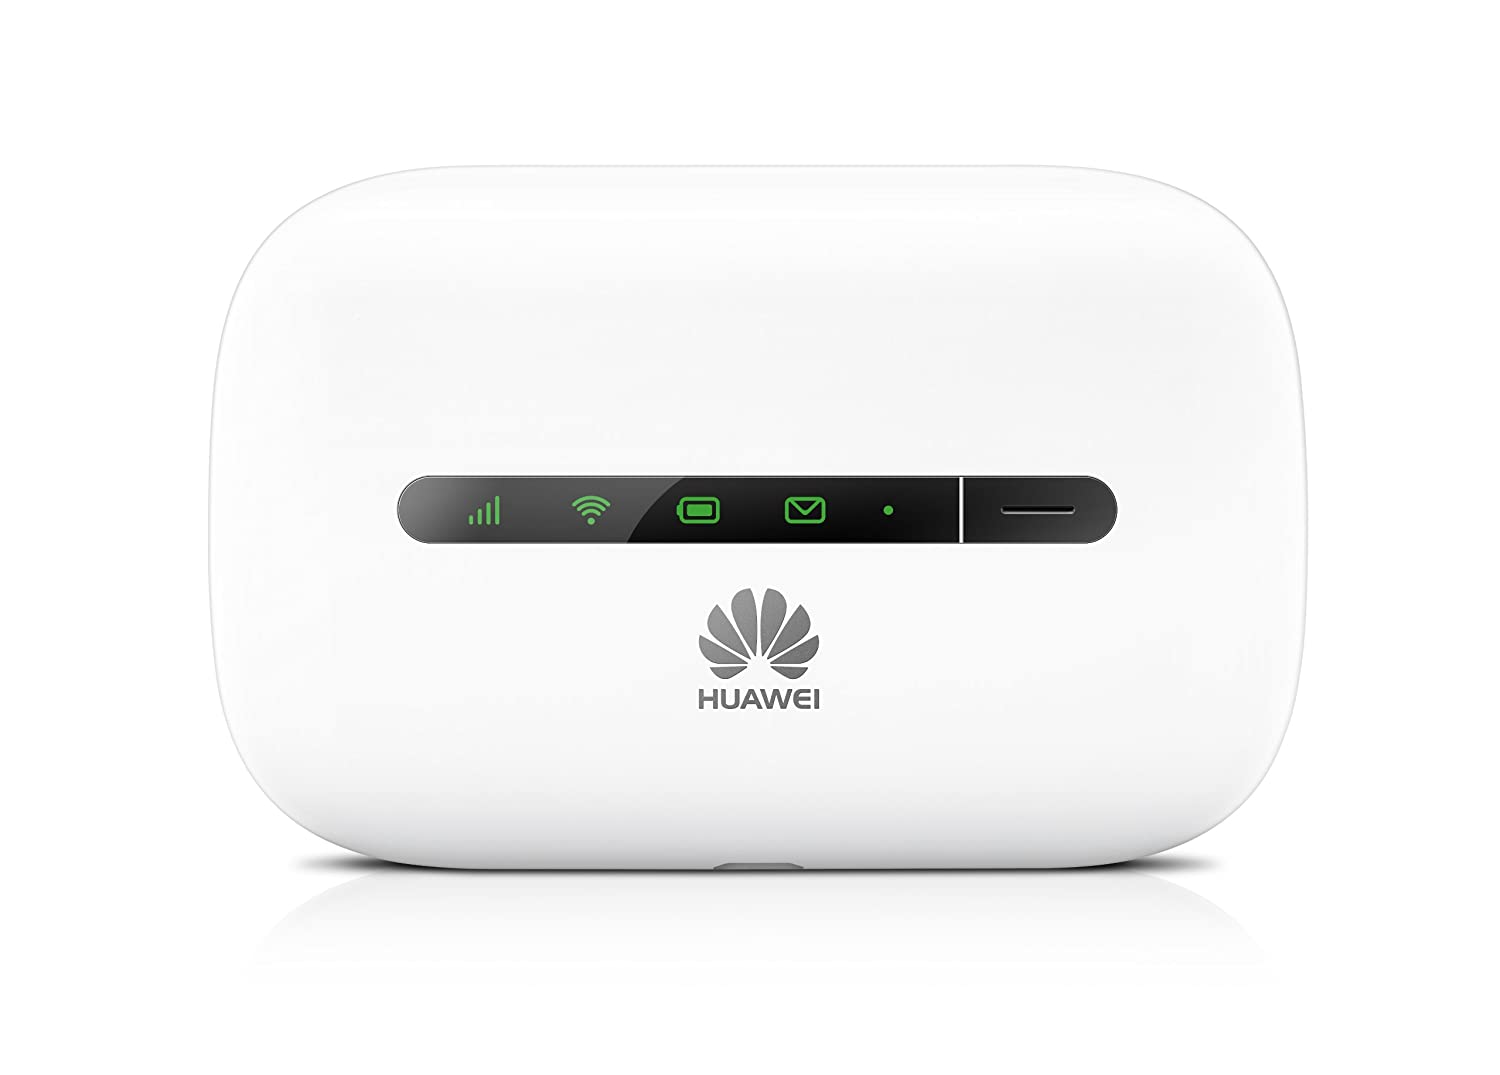 Huawei E5330Bs-2 21 Mbps 3G Mobile WiFi Hotspot (3G in Europe, Asia, Middle East & Africa) (black)